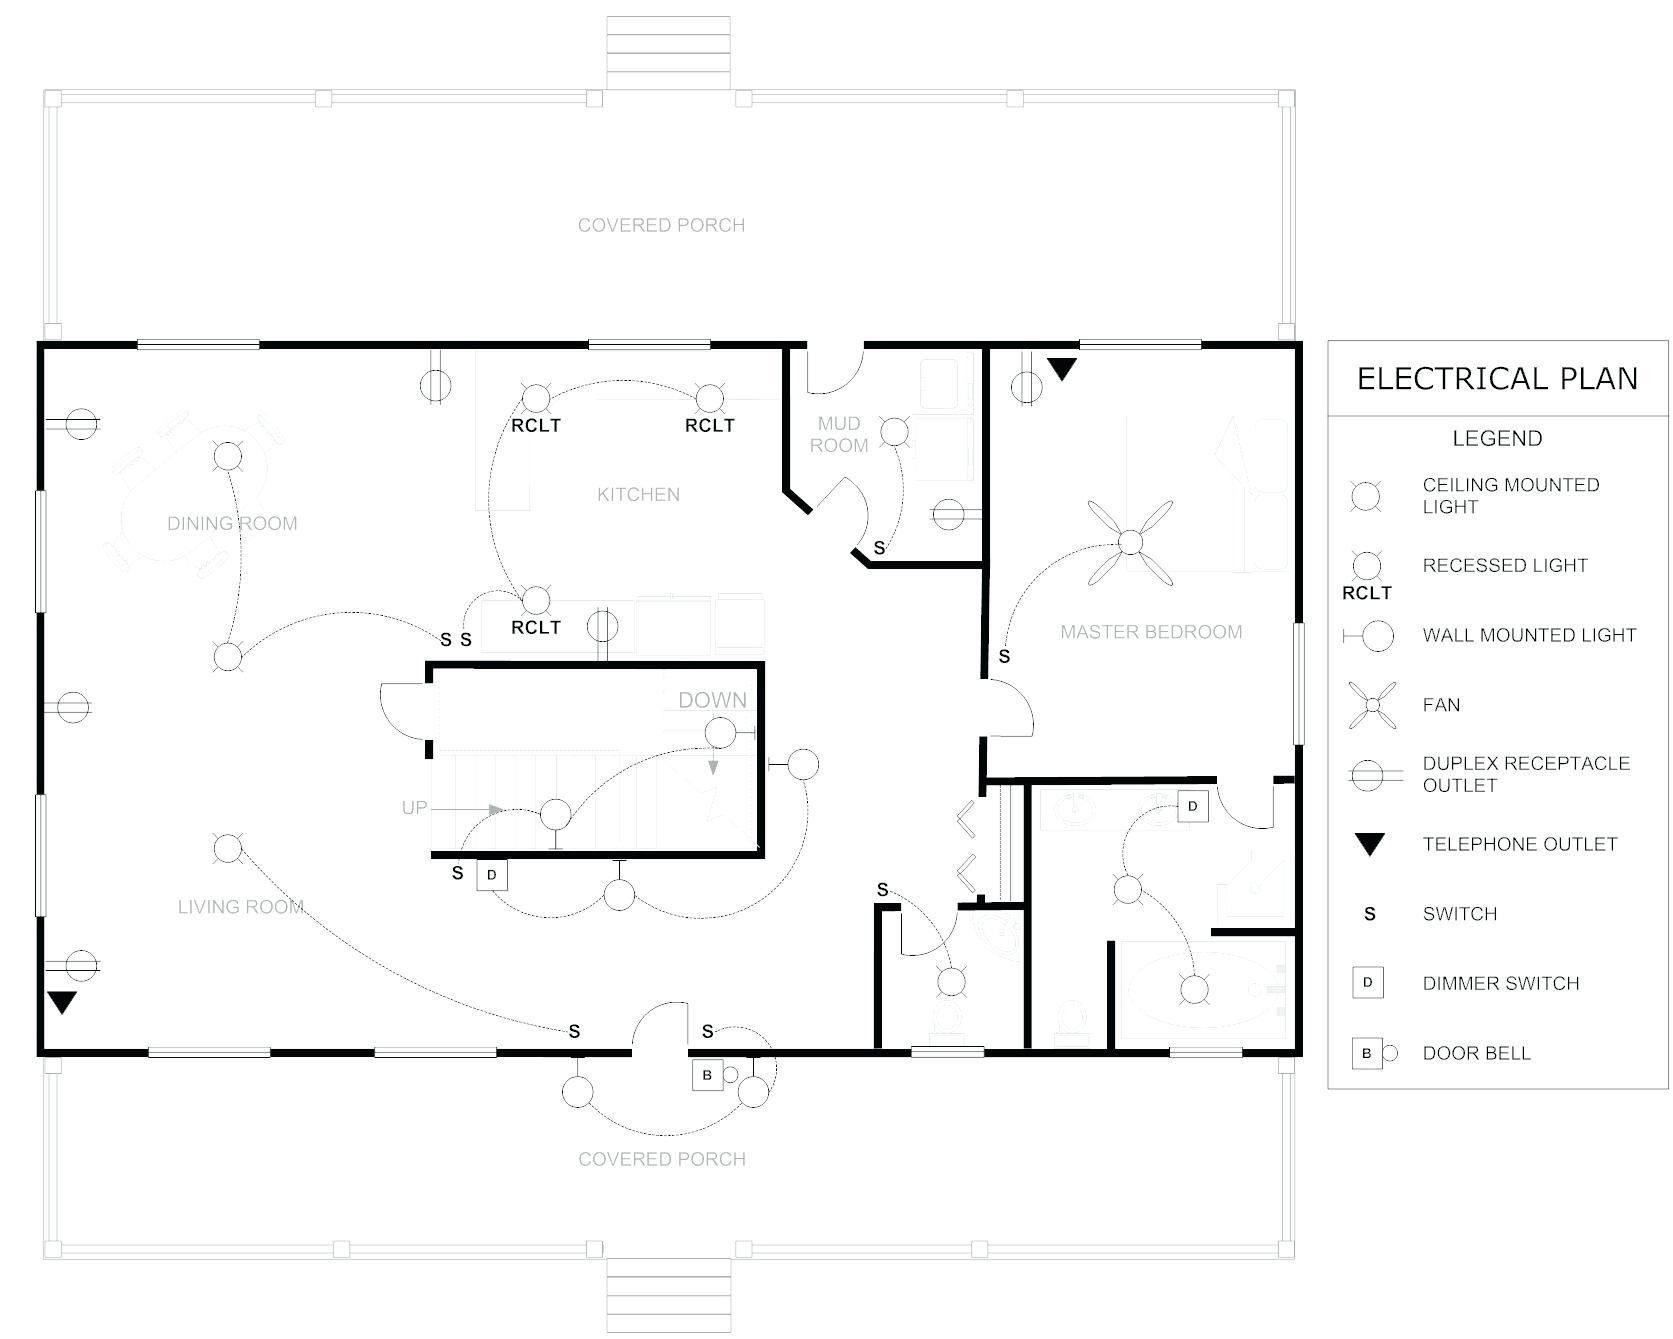 New Electrical Floor Plan Sample Diagram Wiringdiagram